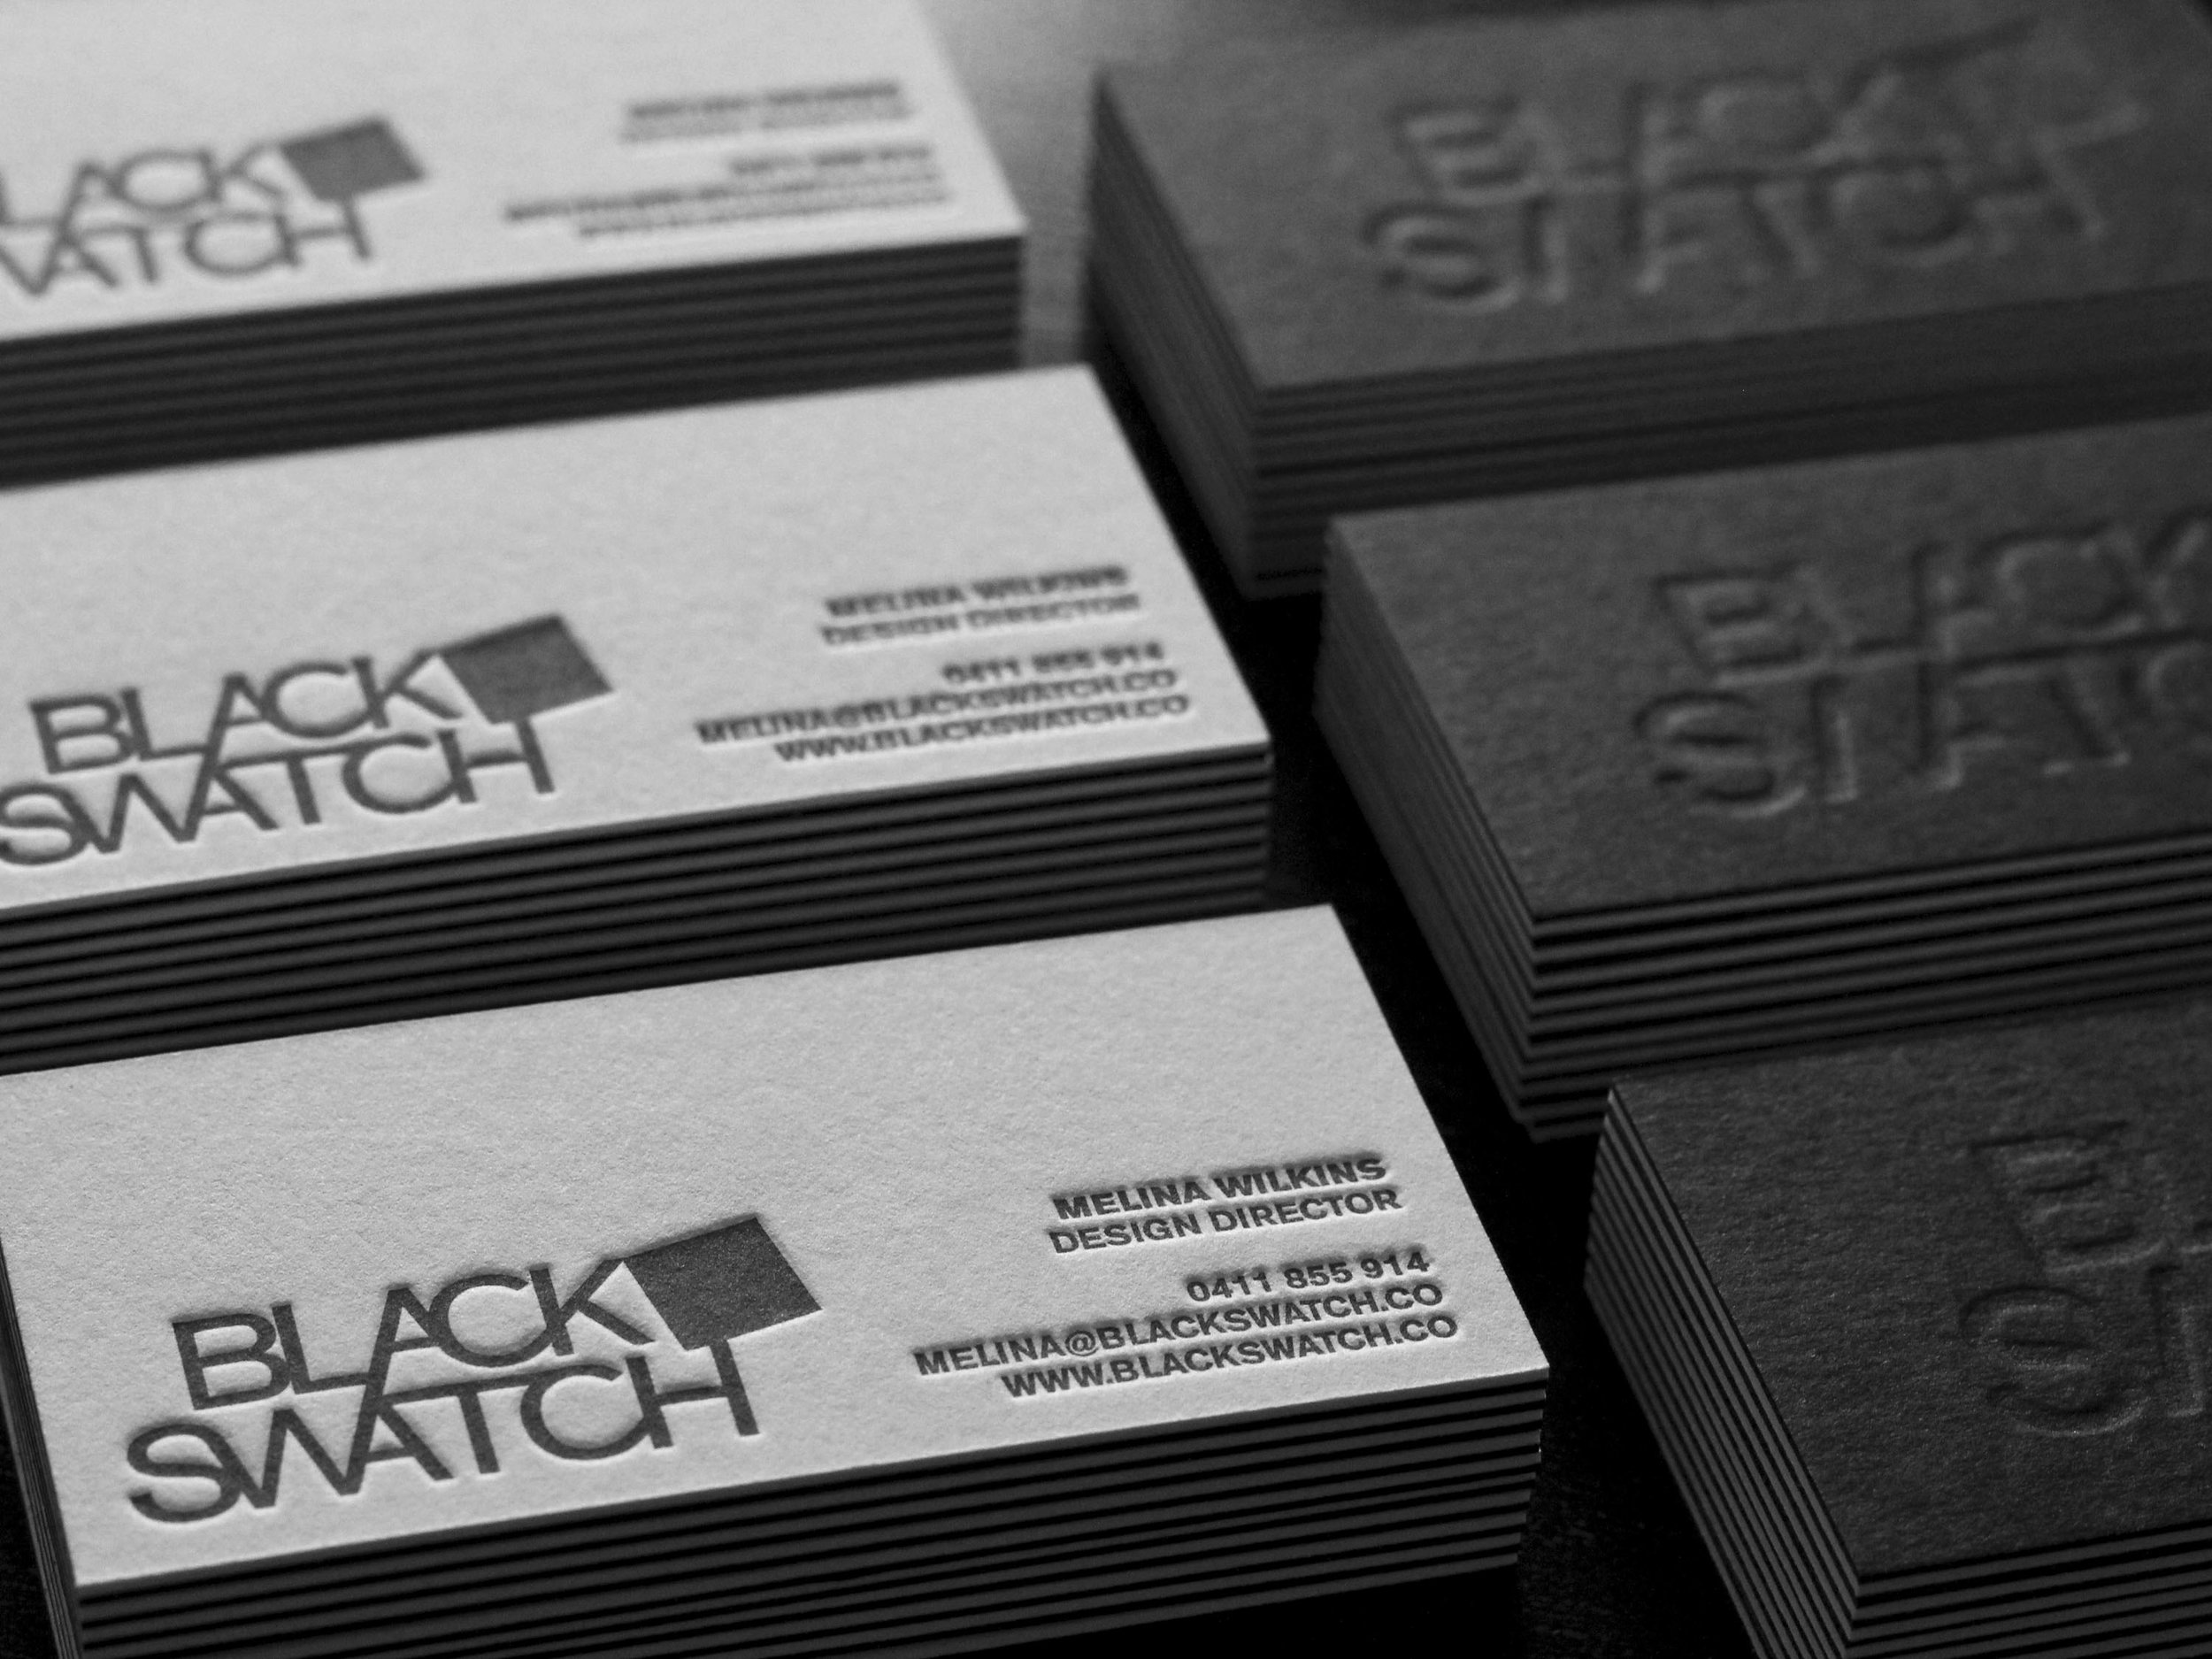 BLACKSWATCH_SELF PROMO_packaging2 copy.jpg